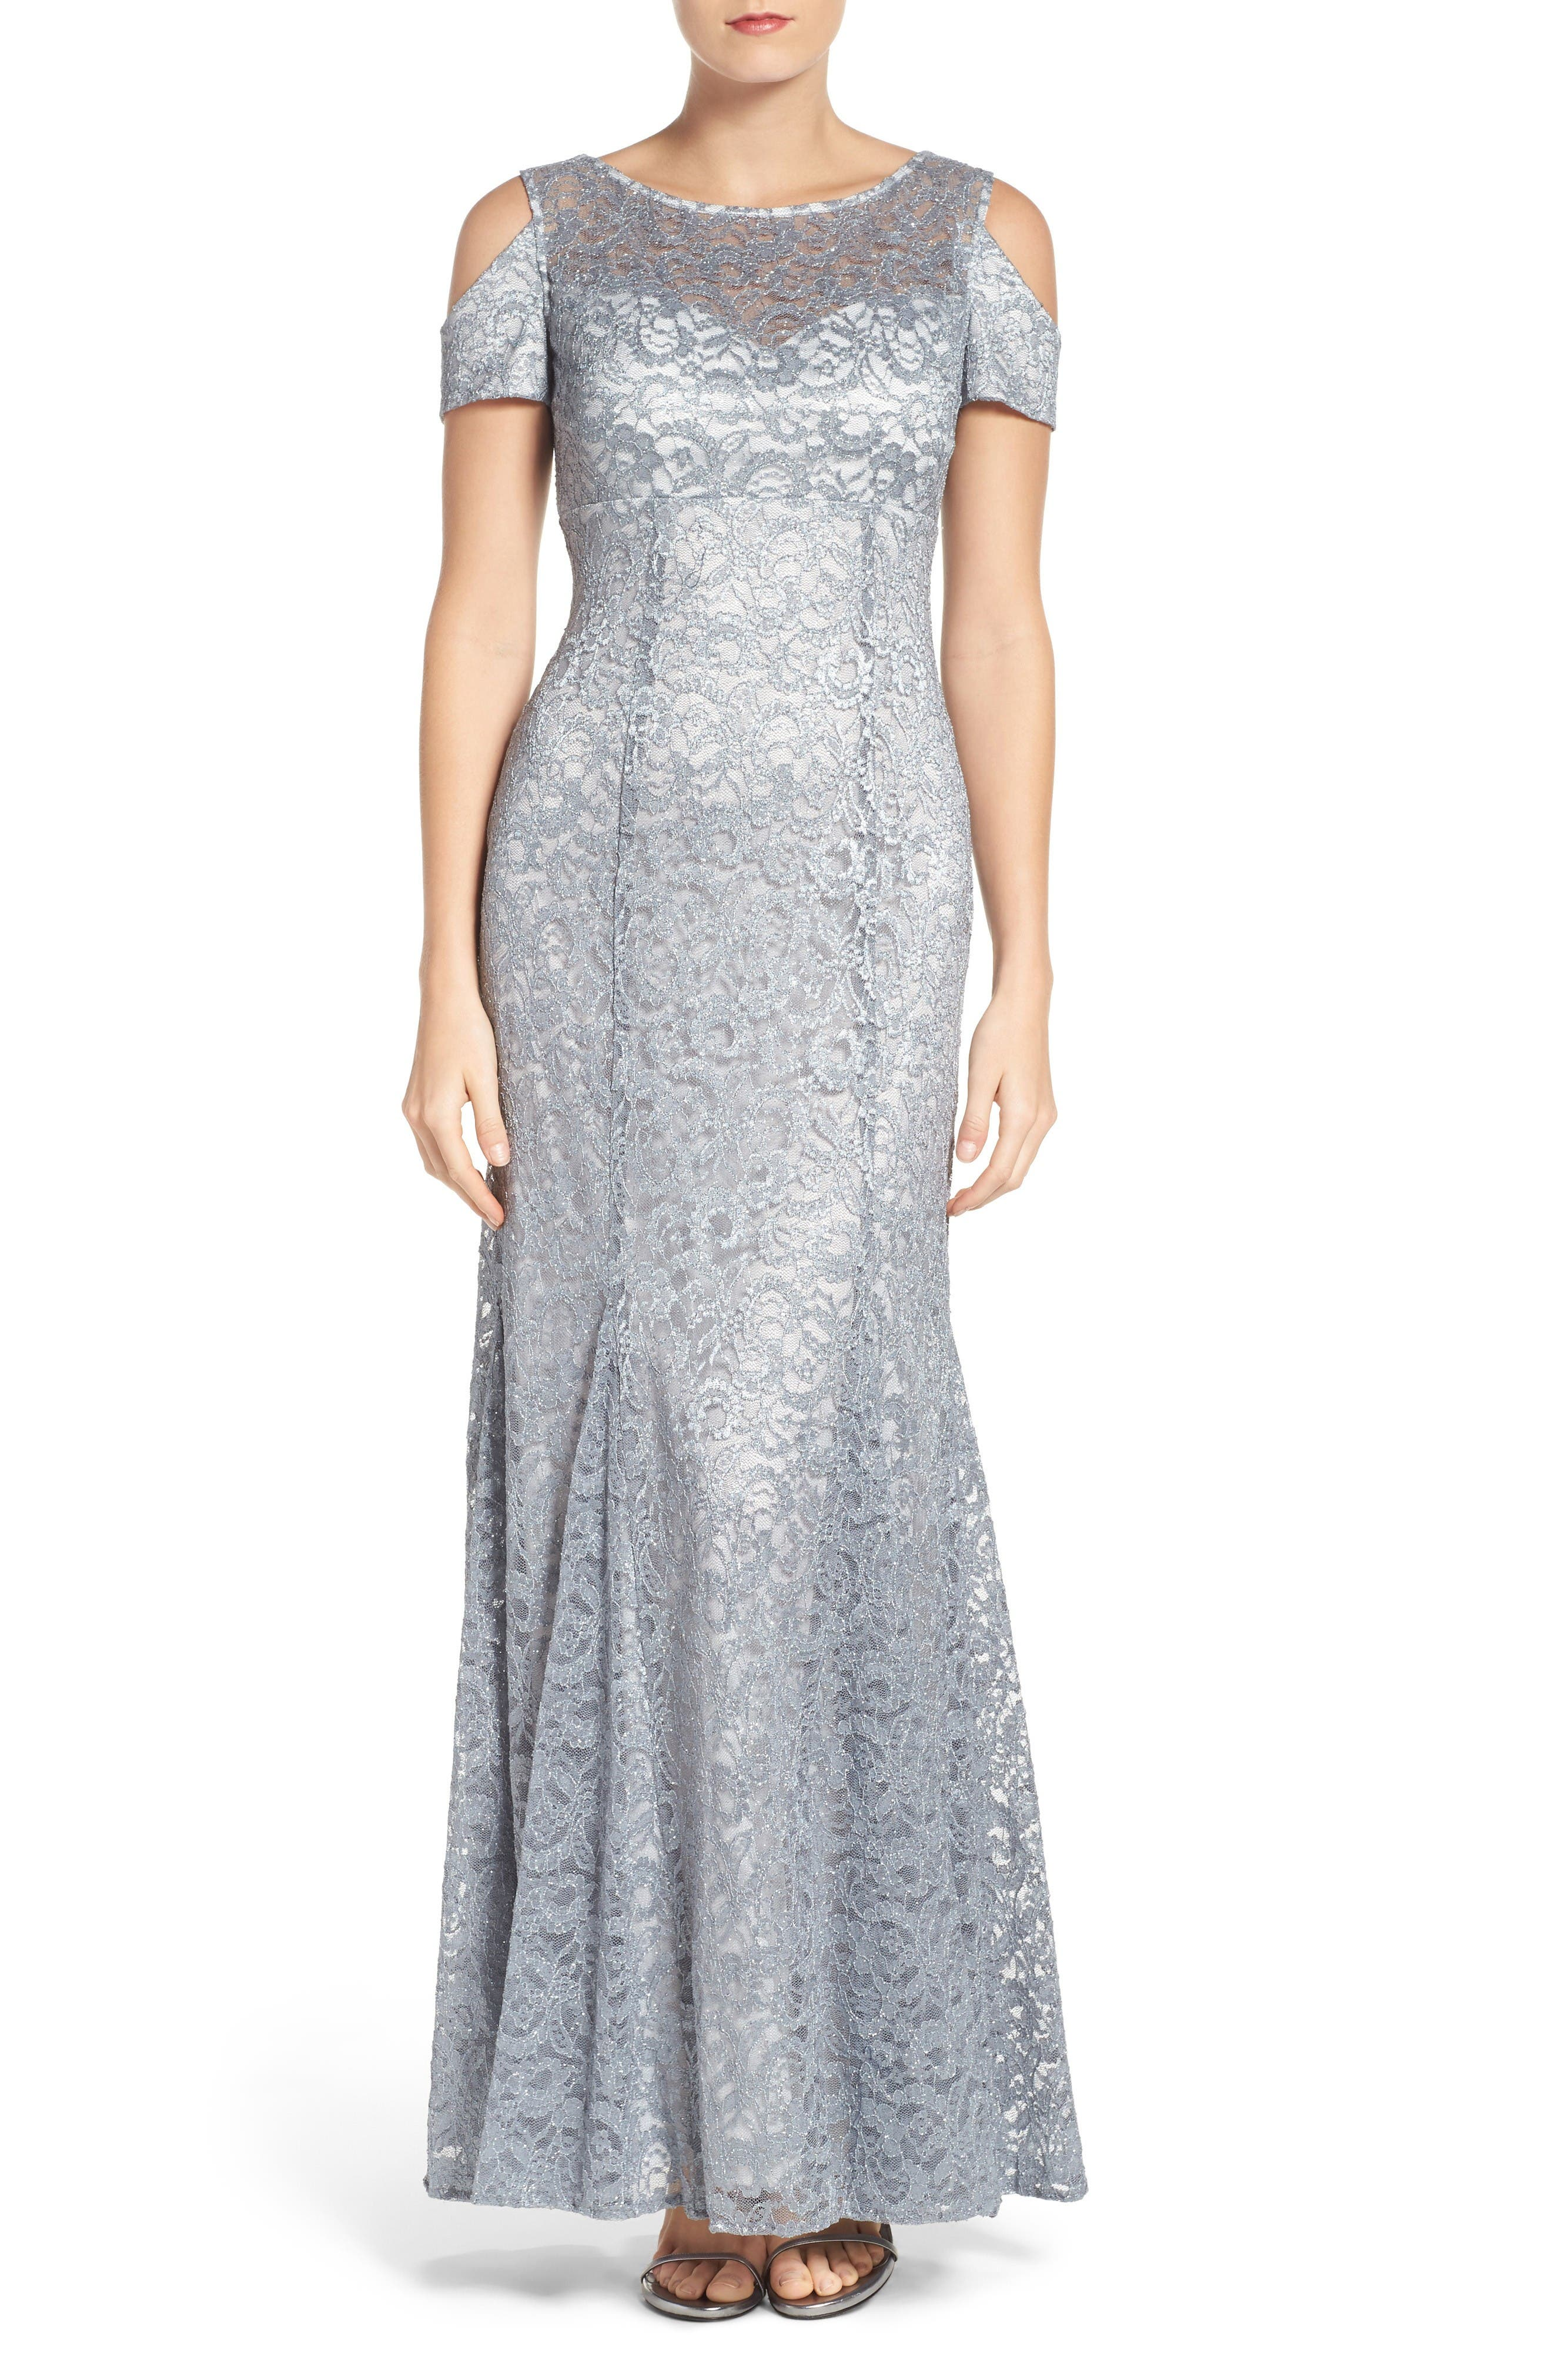 Main Image - Morgan & Co. Cold Shoulder Lace Gown